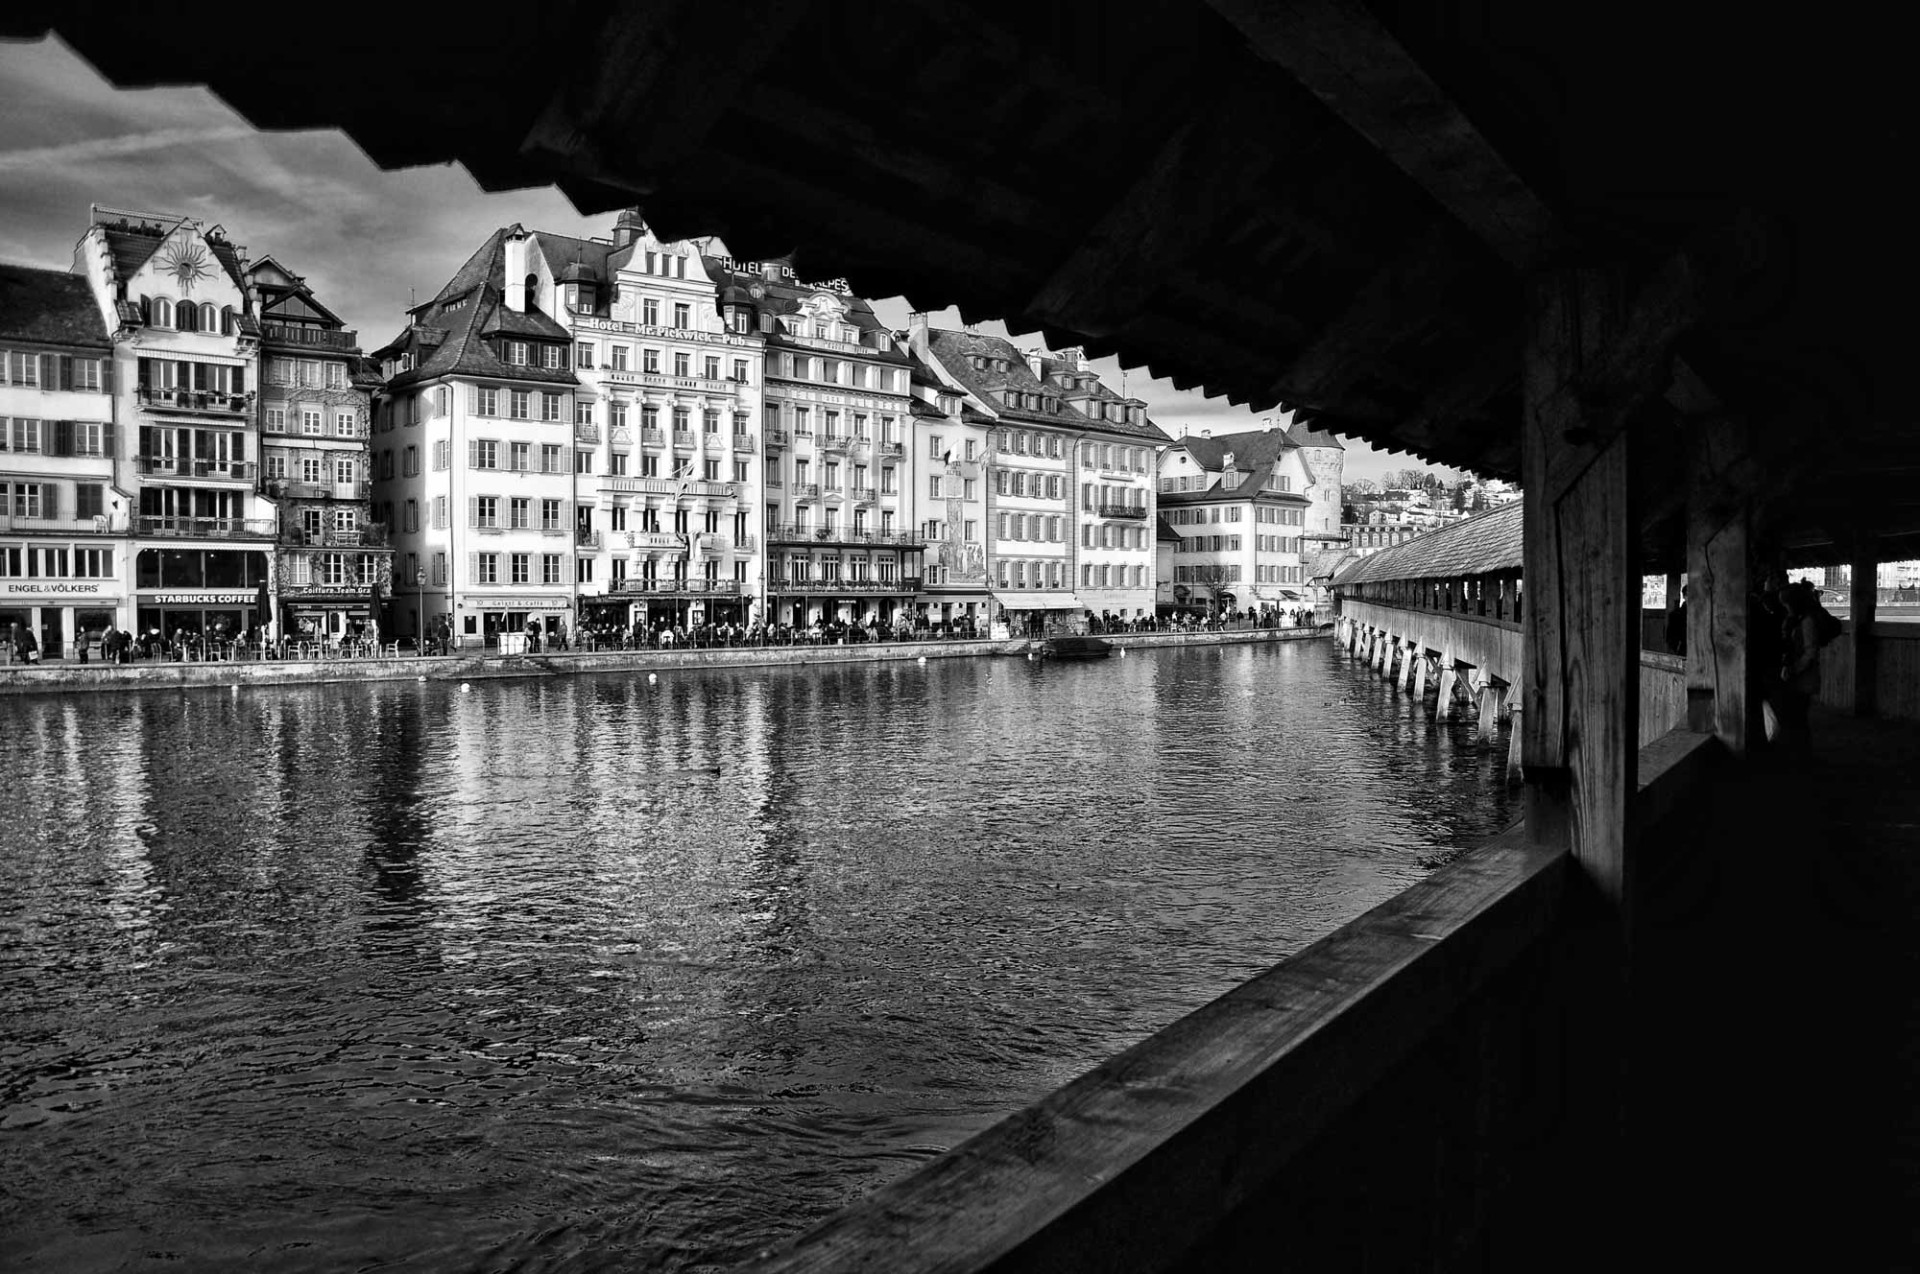 Luzern - Switzerland